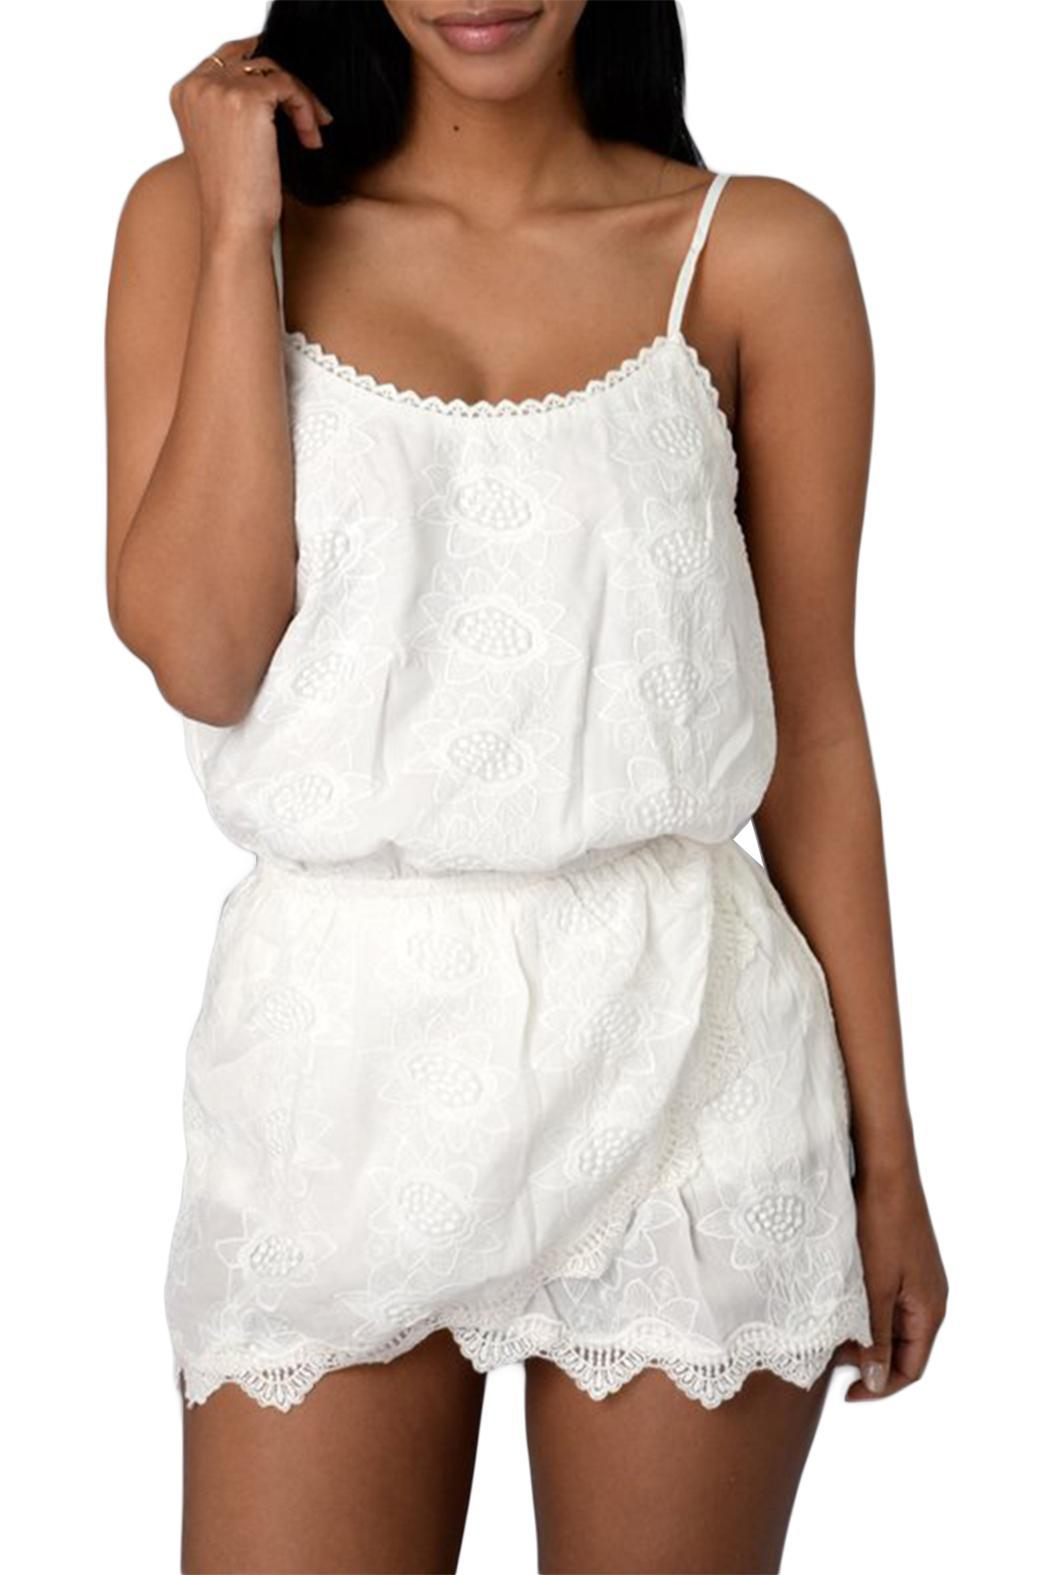 81b2901a9c59 Girl Obsessed Willow Romper from New York City by Girl Obsessed ...